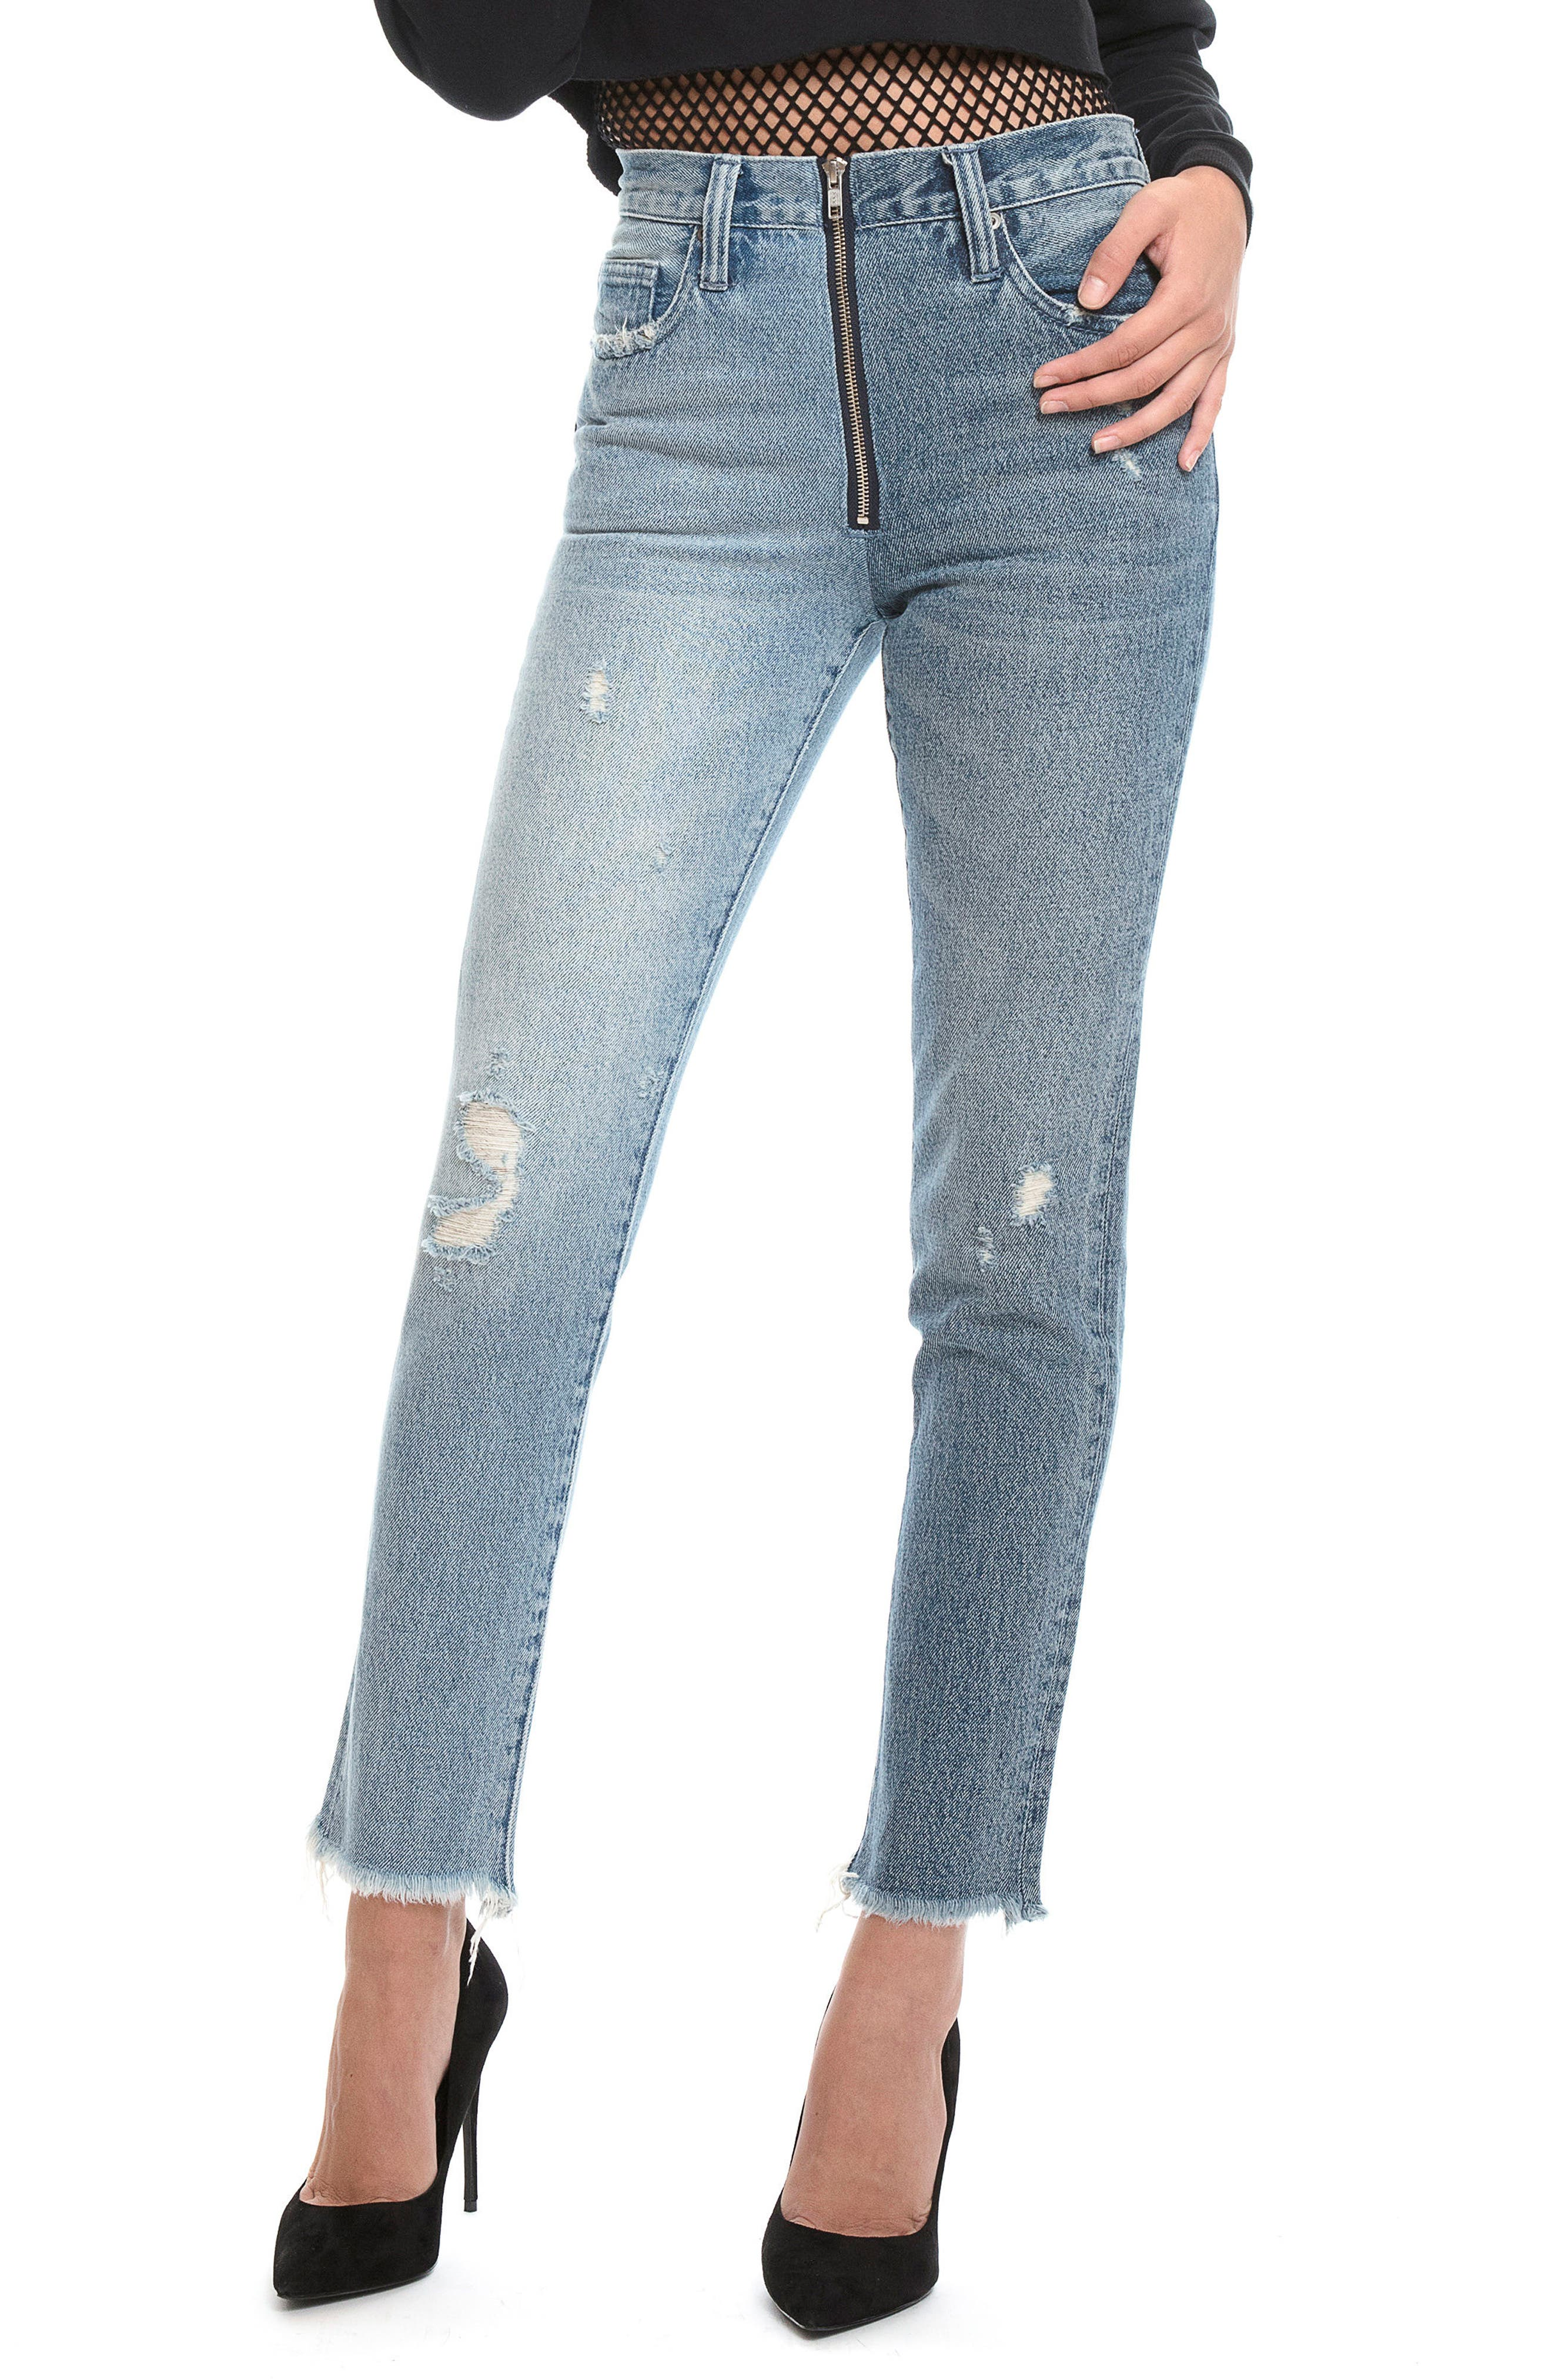 Chevelle Ankle Skinny Jeans,                         Main,                         color, Indigo